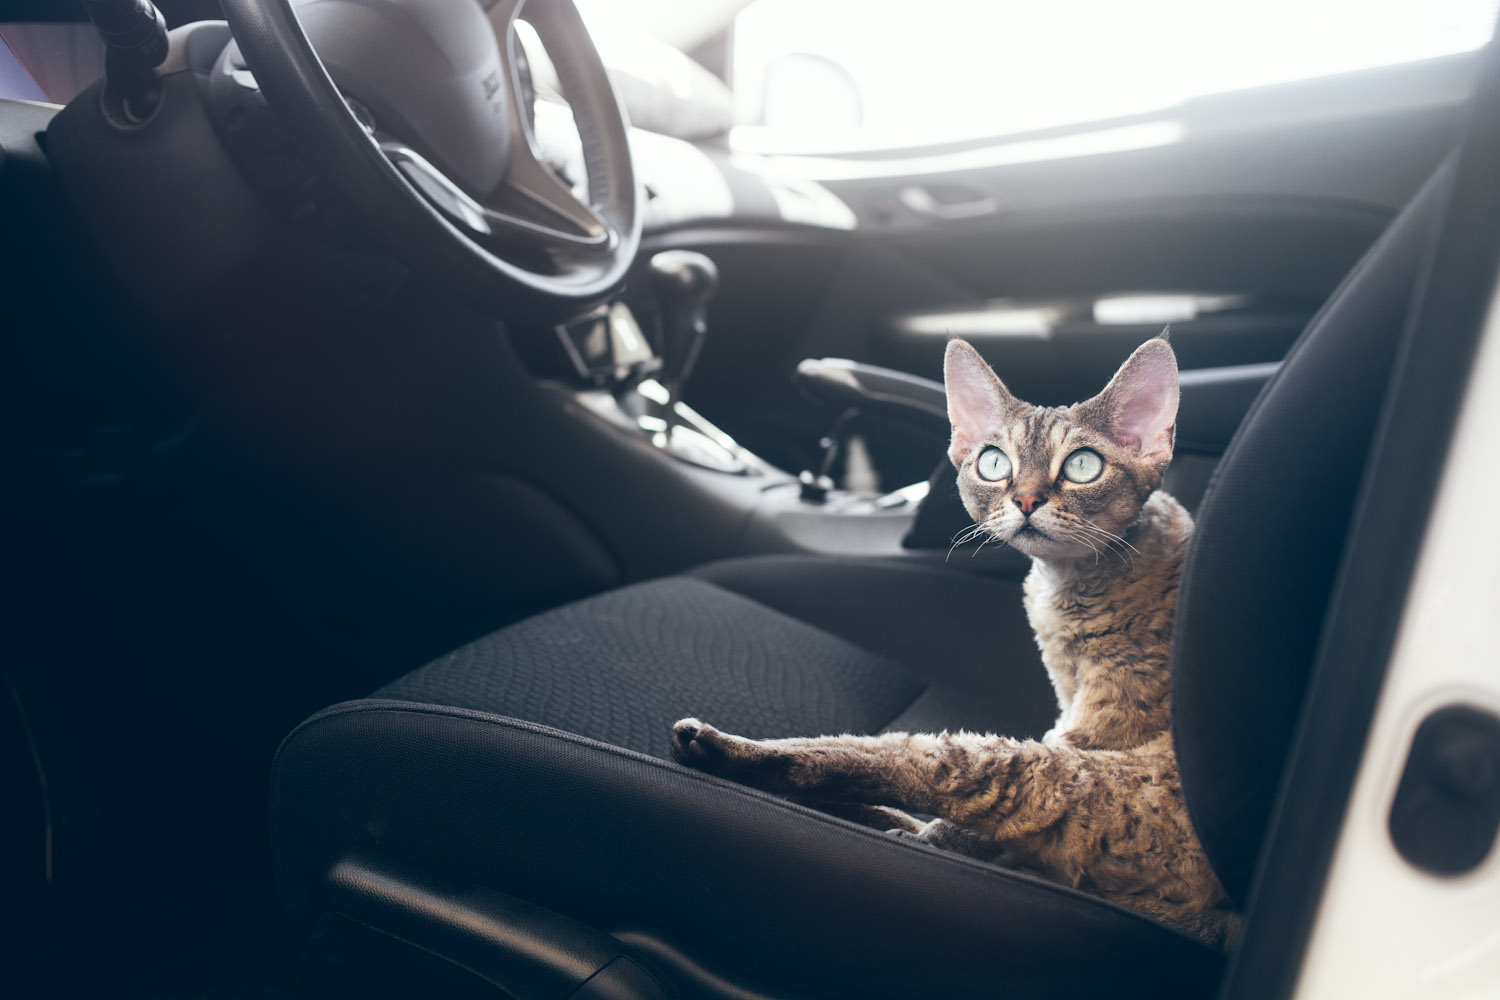 How to keep cats out of car?